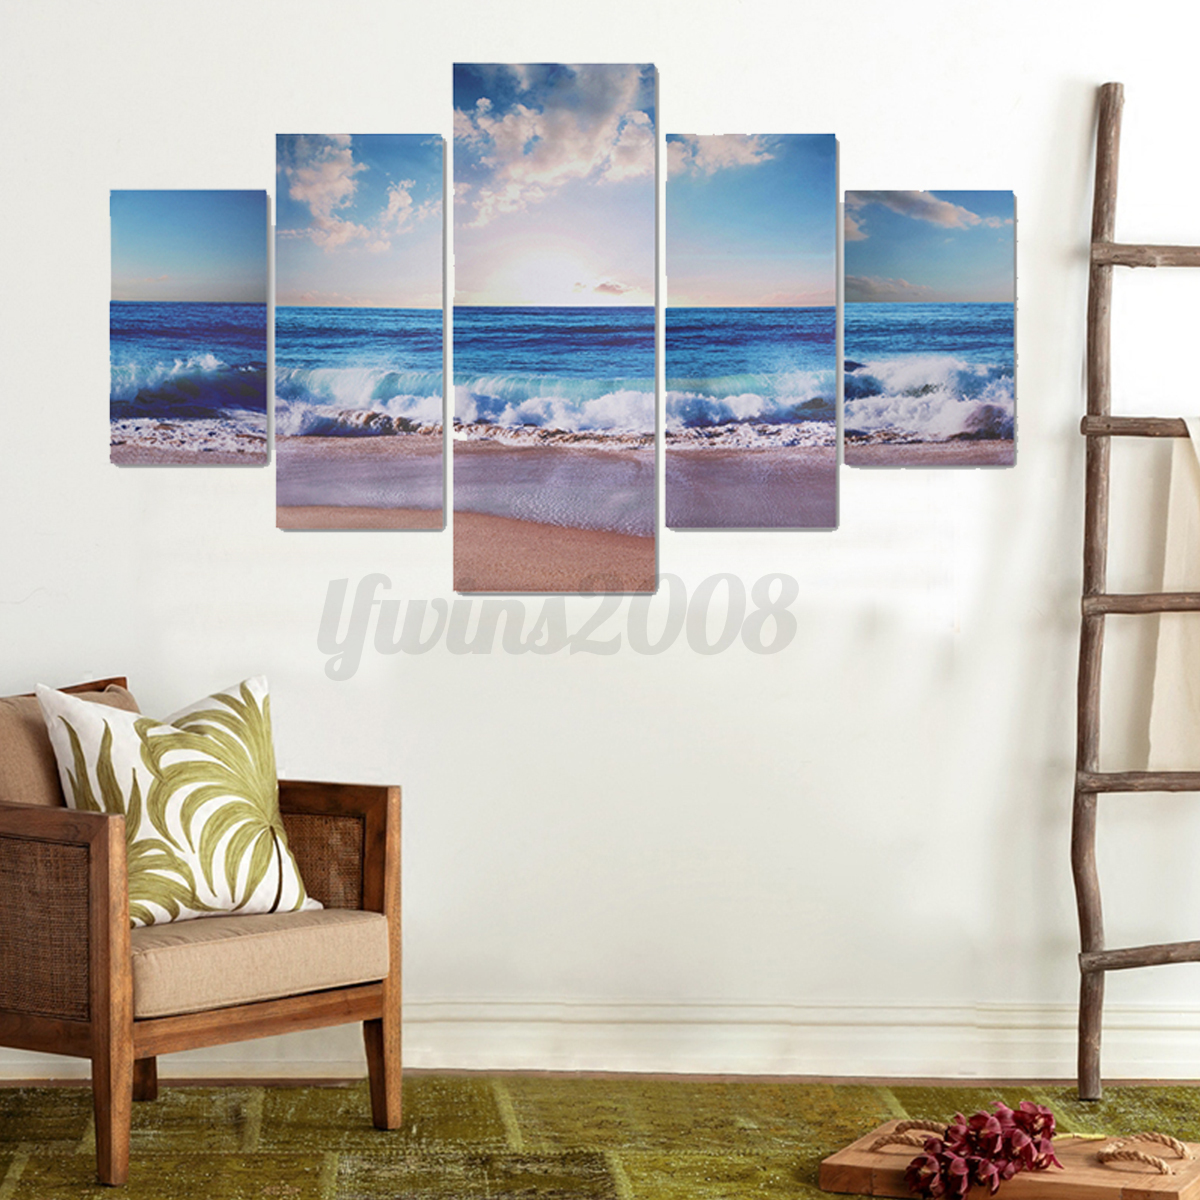 5tlg landschaft leinwand bild kunstdruck wandbilder bilder set deco neu ebay. Black Bedroom Furniture Sets. Home Design Ideas